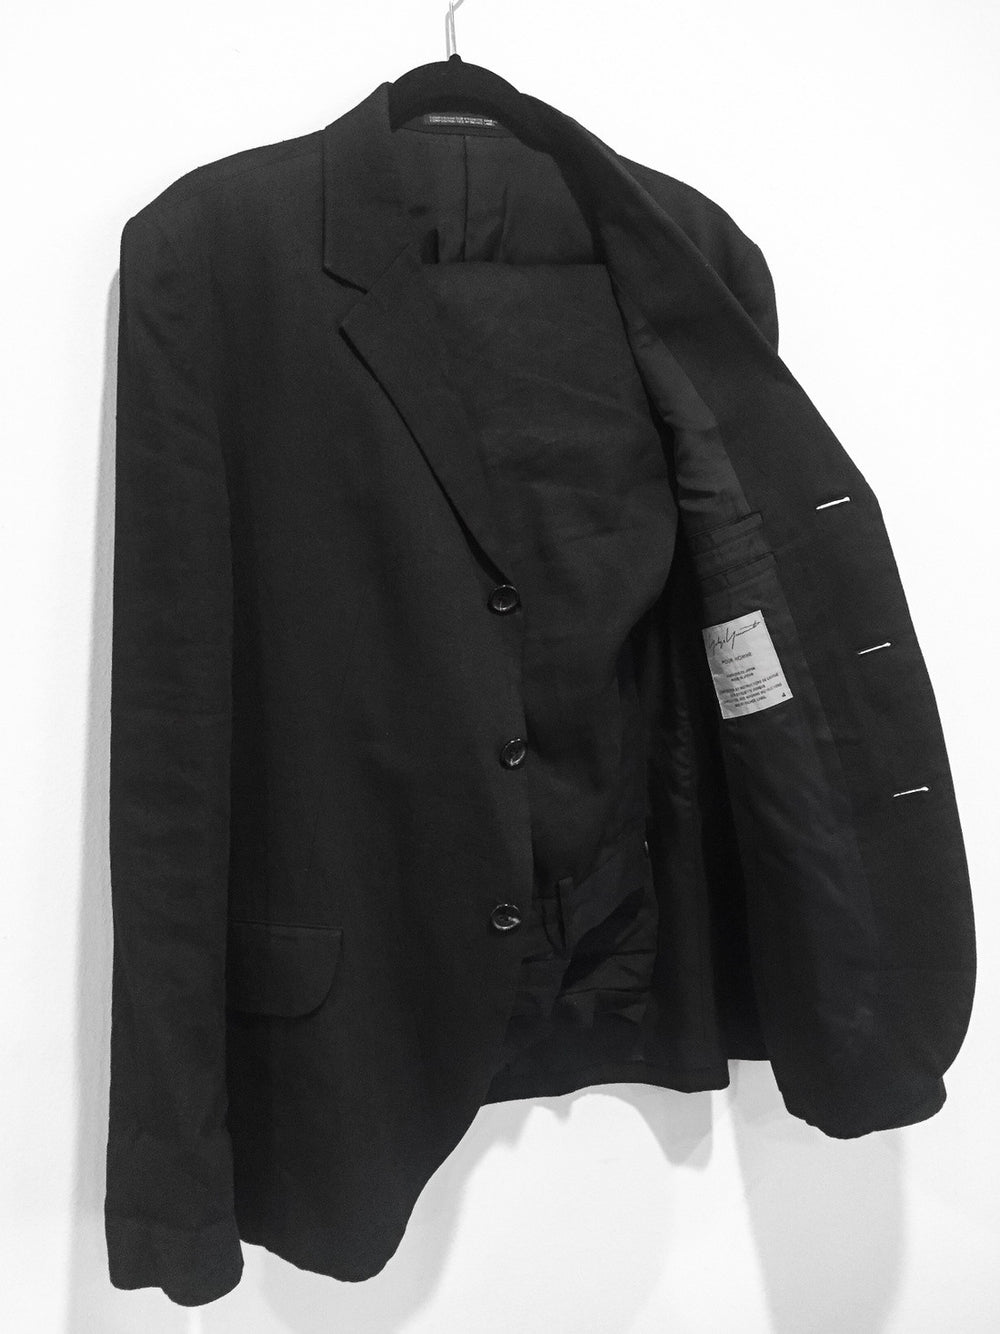 Yohji Yamamoto Pour Homme SS09 Don't Do That Suit